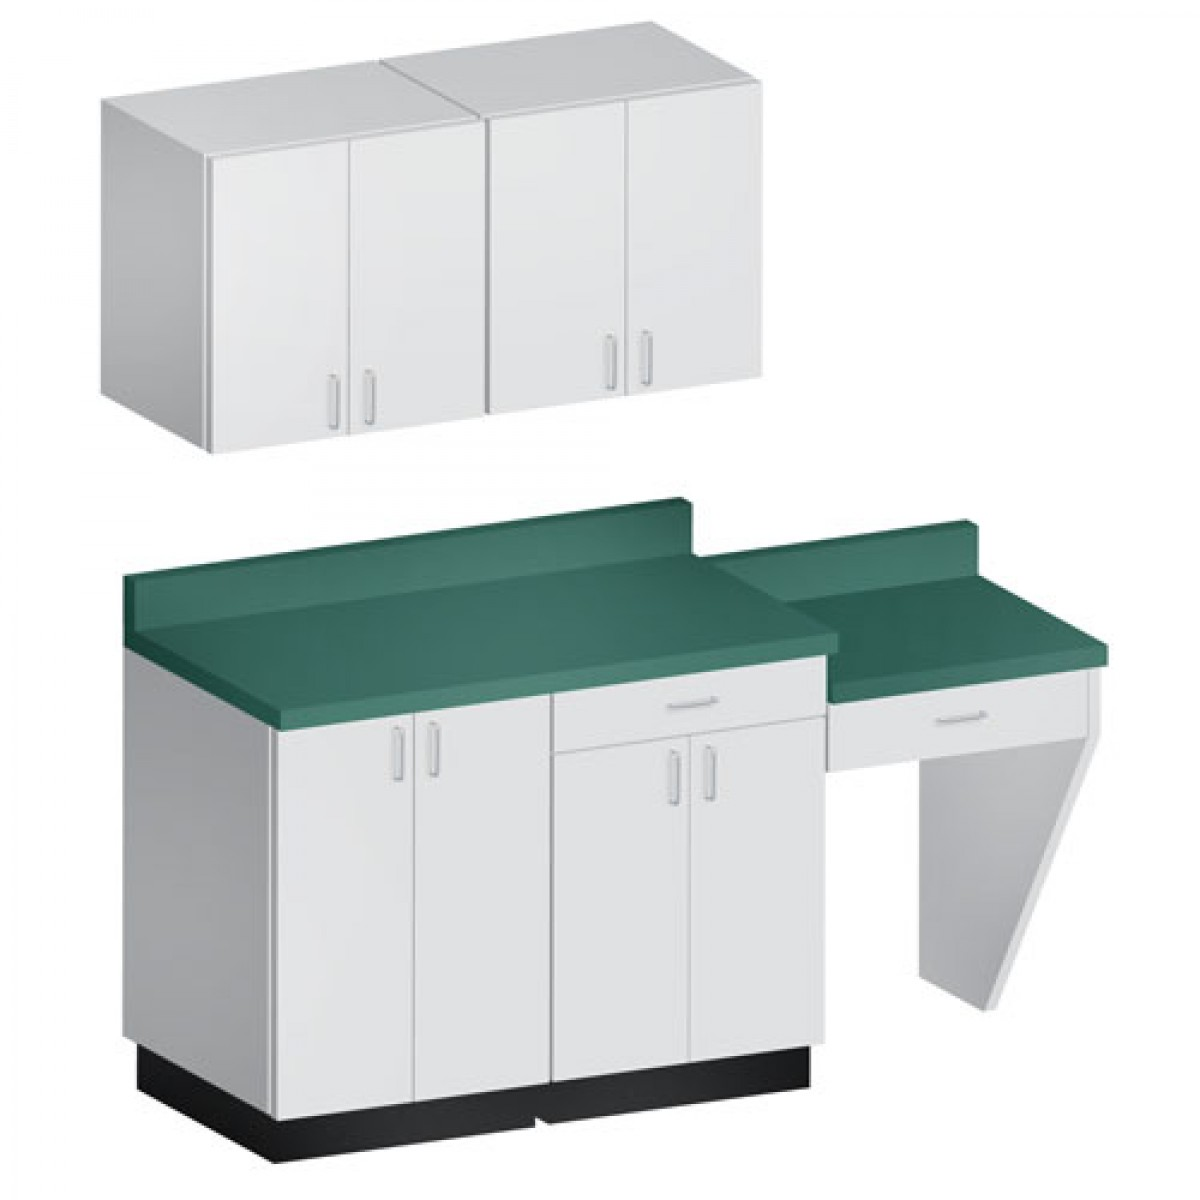 Hausmann B-404 74 Inch Base Cabinet W/ Desk And Wall Cabinets